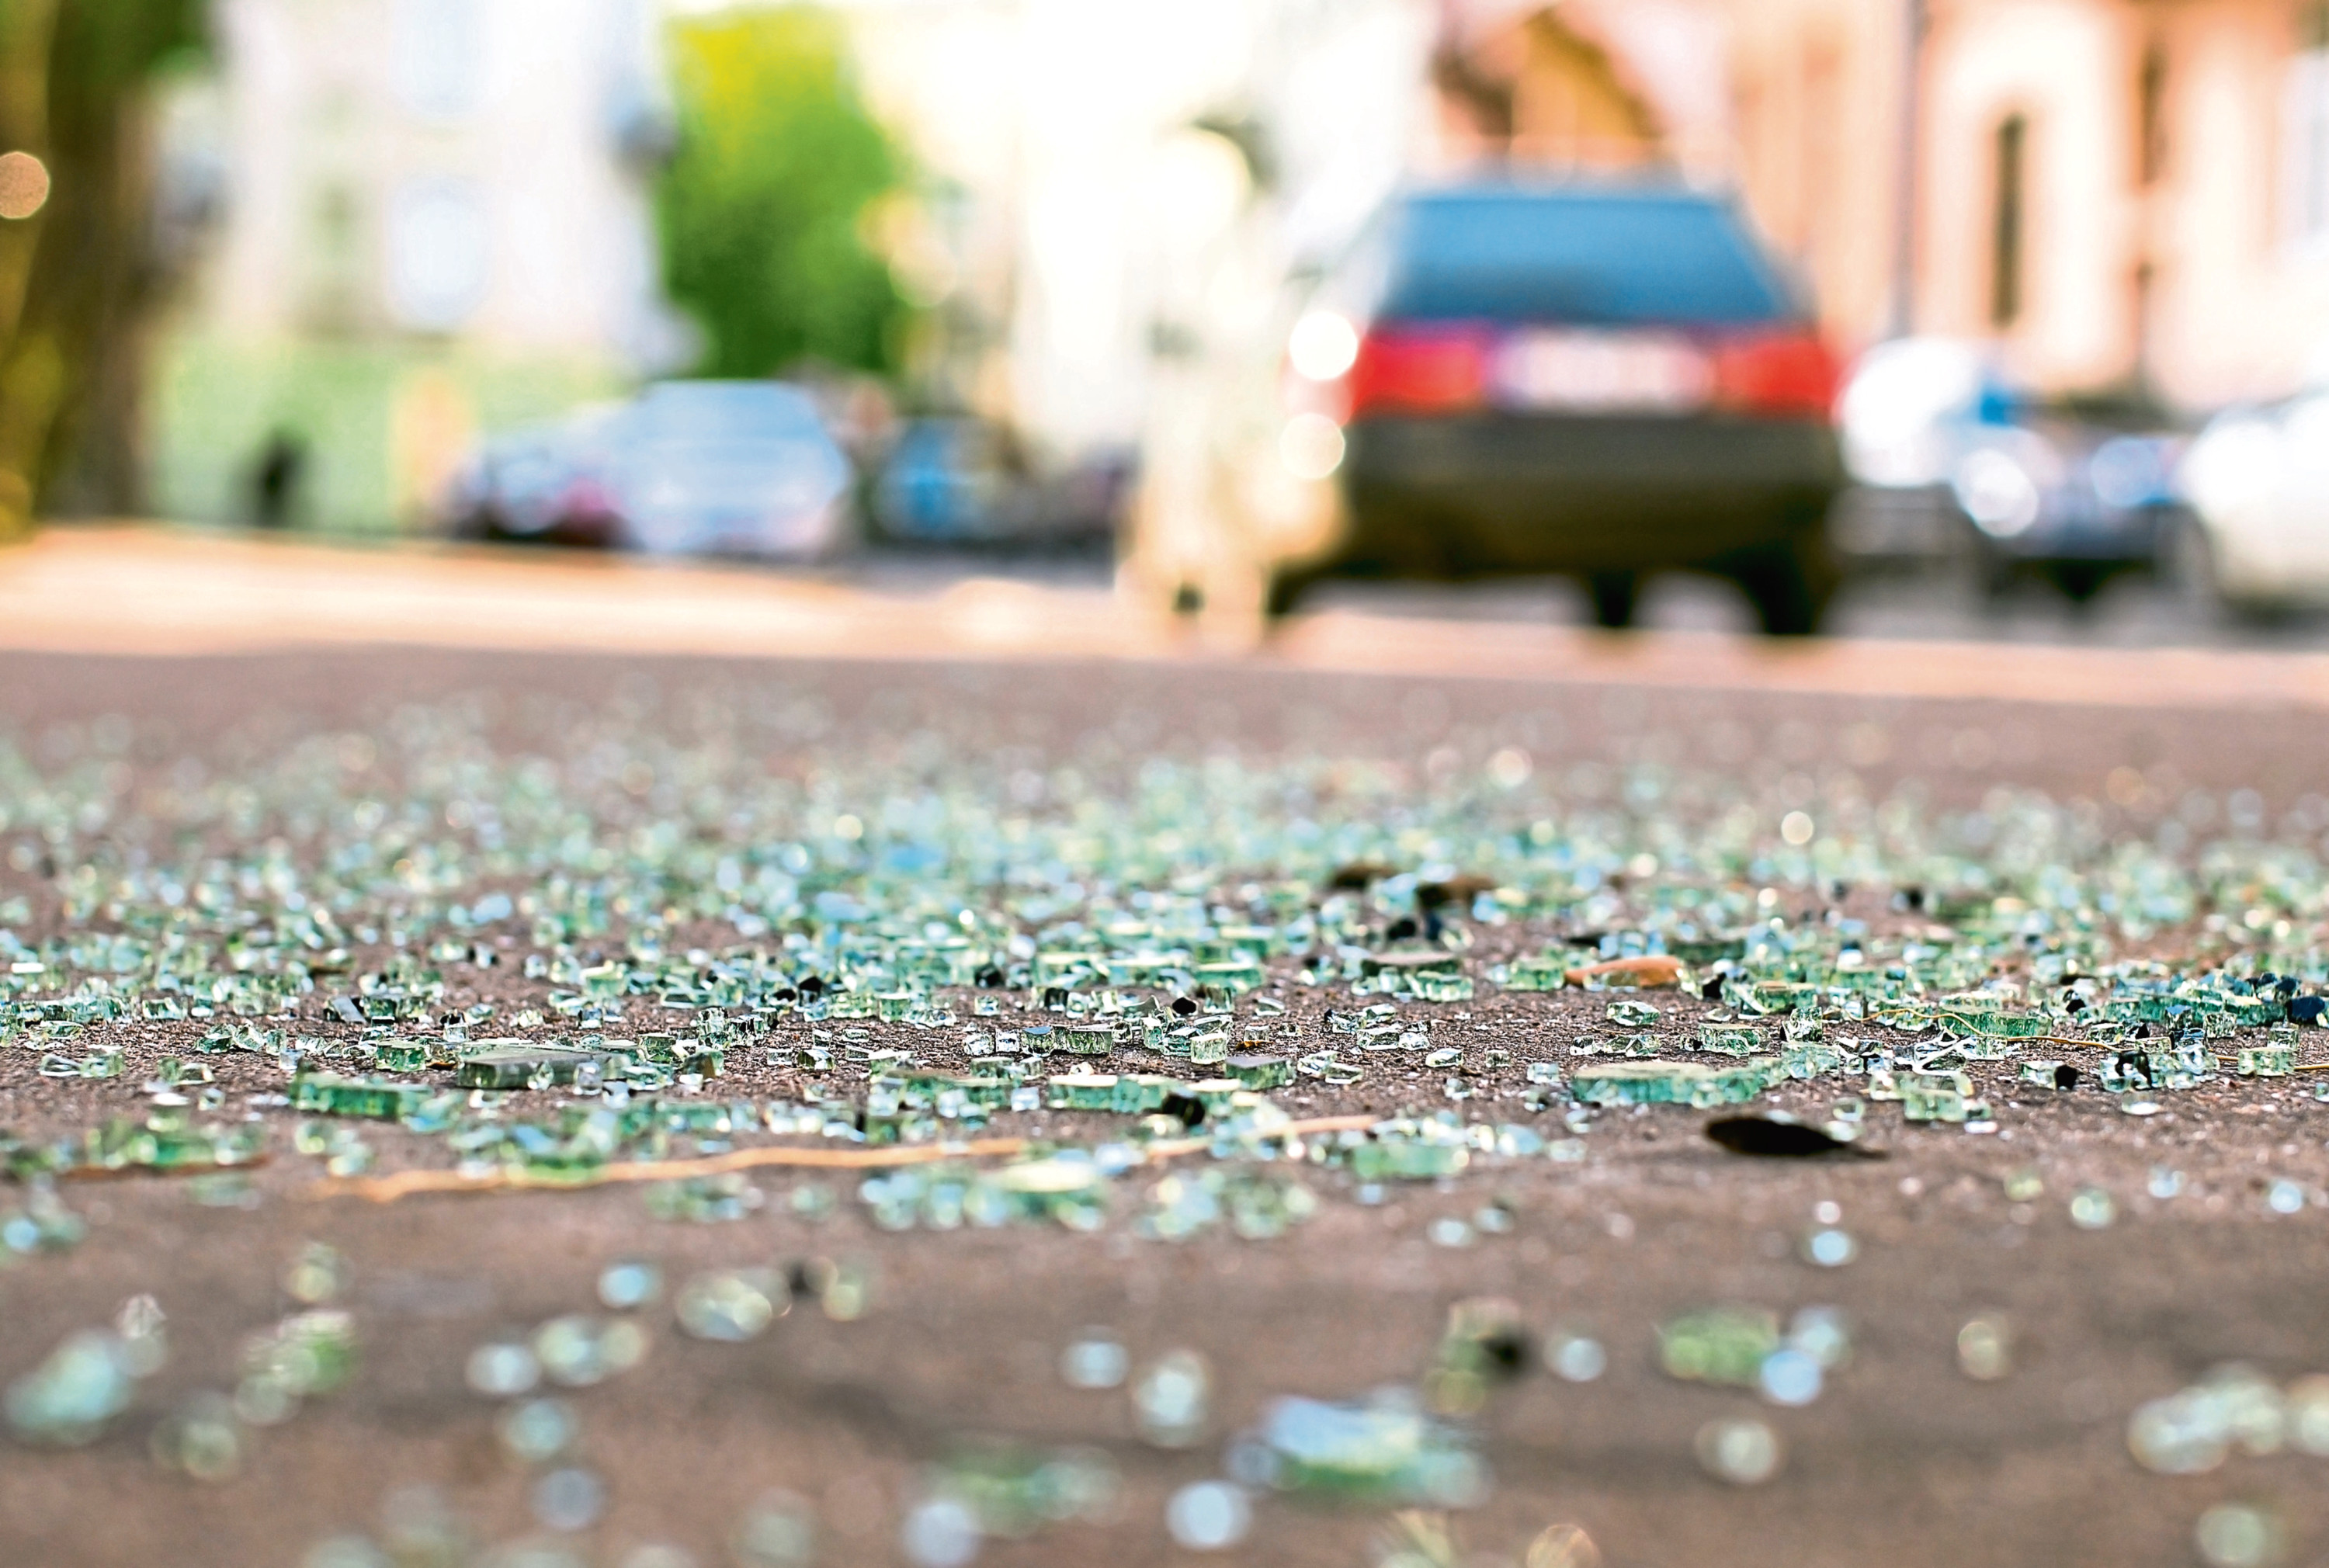 Shards of car glass on the street. iStock. Downloaded 11/09/19.